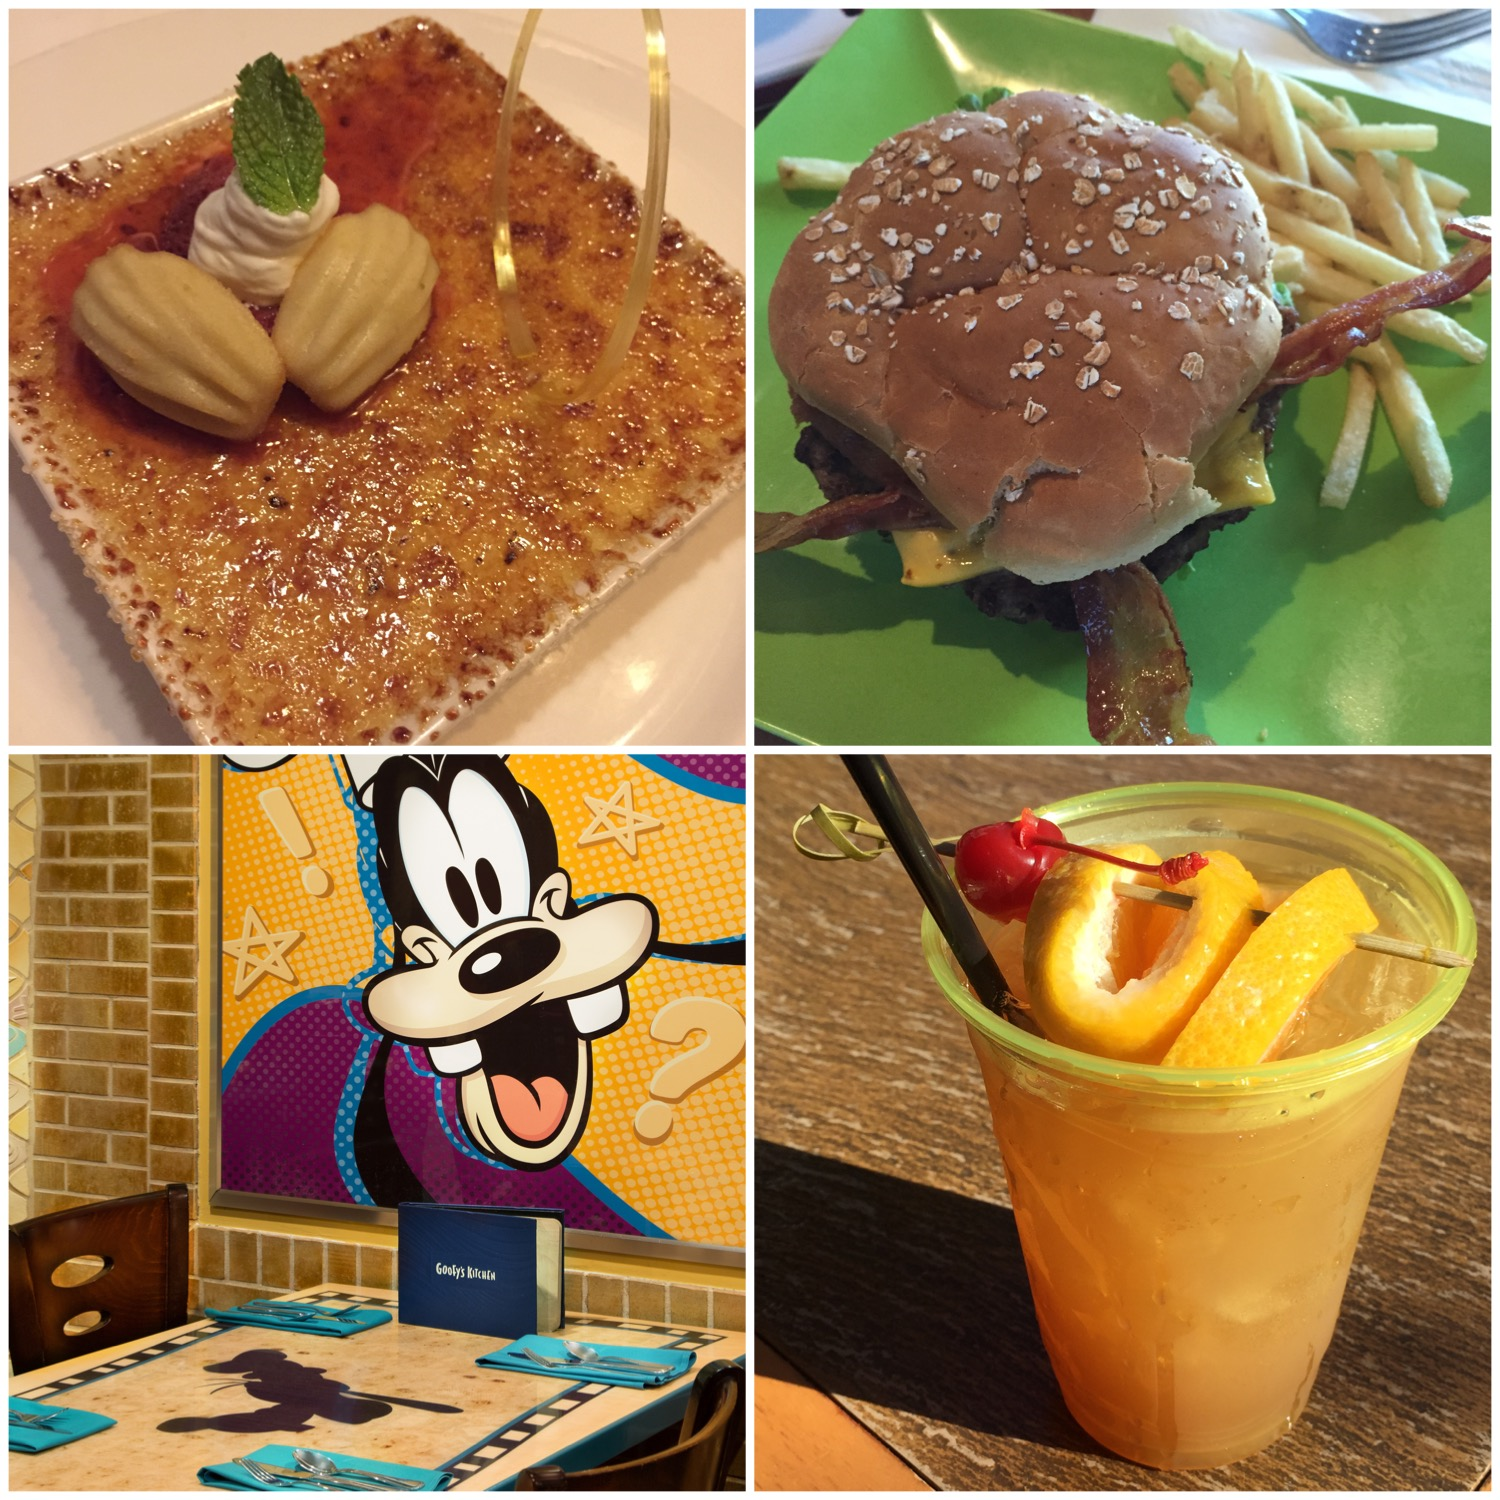 Clockwise from Top Left: Vanilla Creme Brulee from Steakhouse 55, Angus 1/3lb. Bacon Cheeseburger & Fries from Tangaroa Terrace, Goofy's Kitchen table setting, HippopotoMai-Tai from Trader Sam's Enchanted Tiki Bar